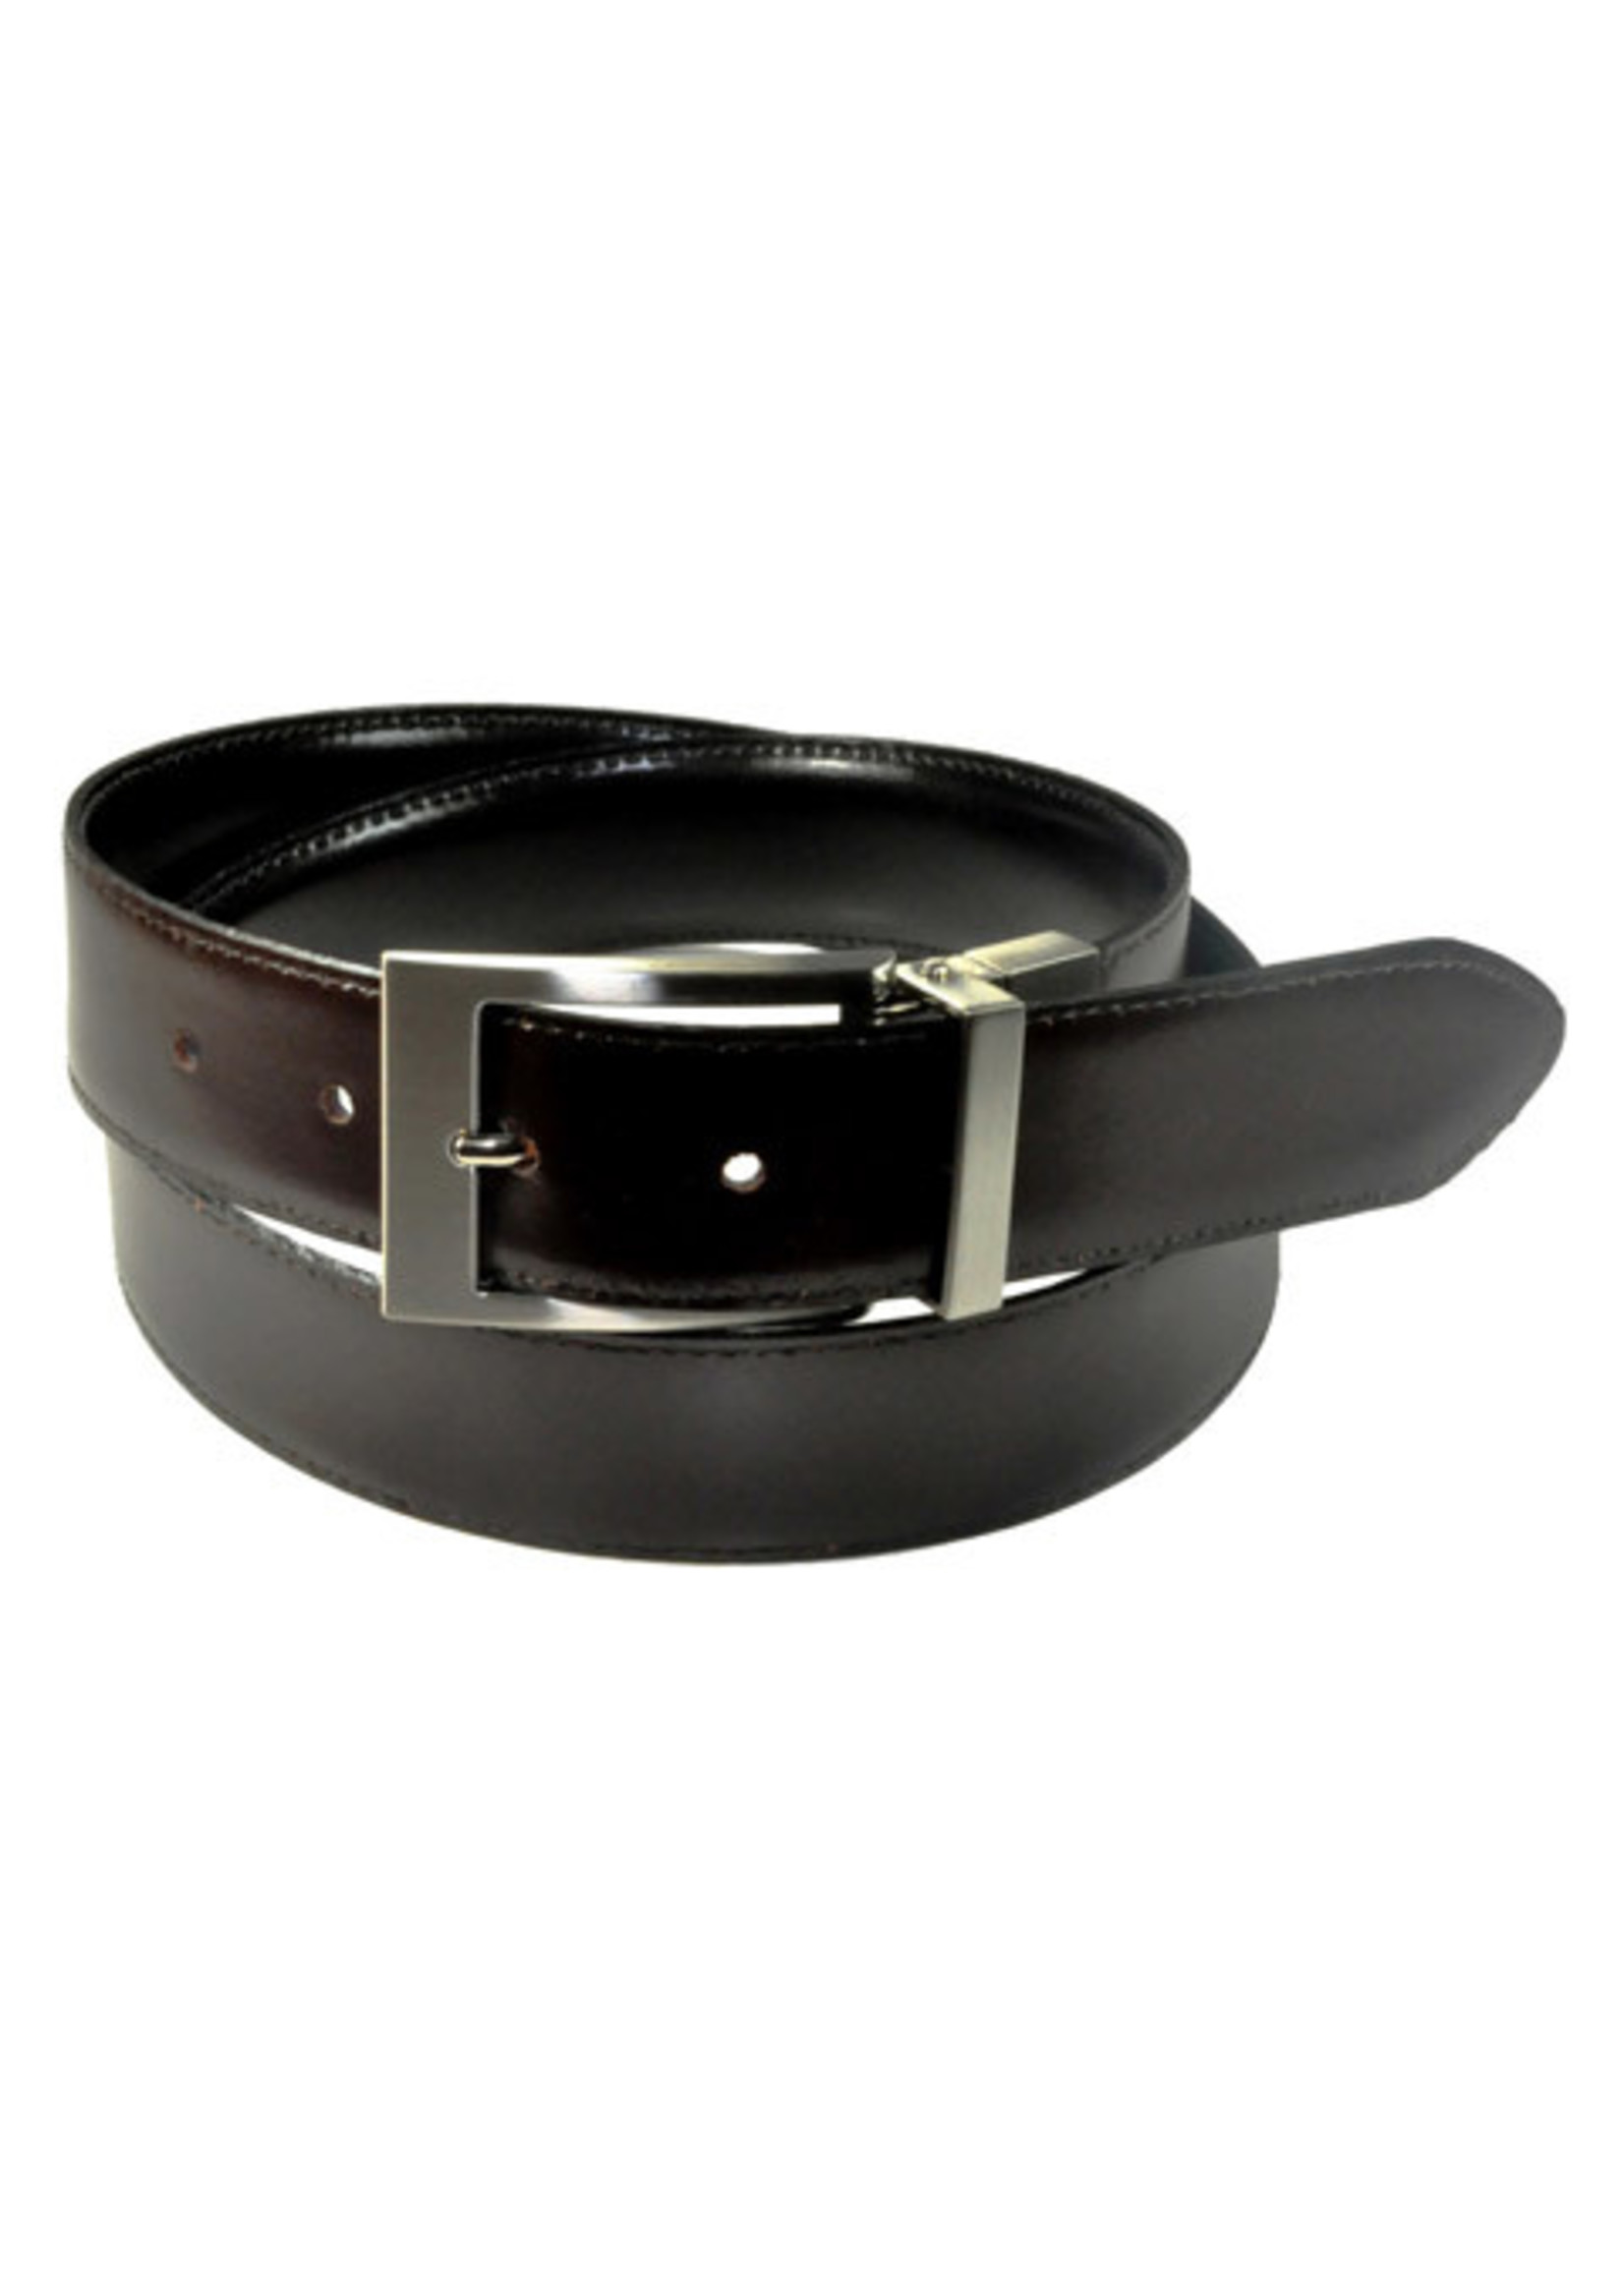 Bench Craft Leather Bench Craft's  Reversible Leather Dress Belt (3579)